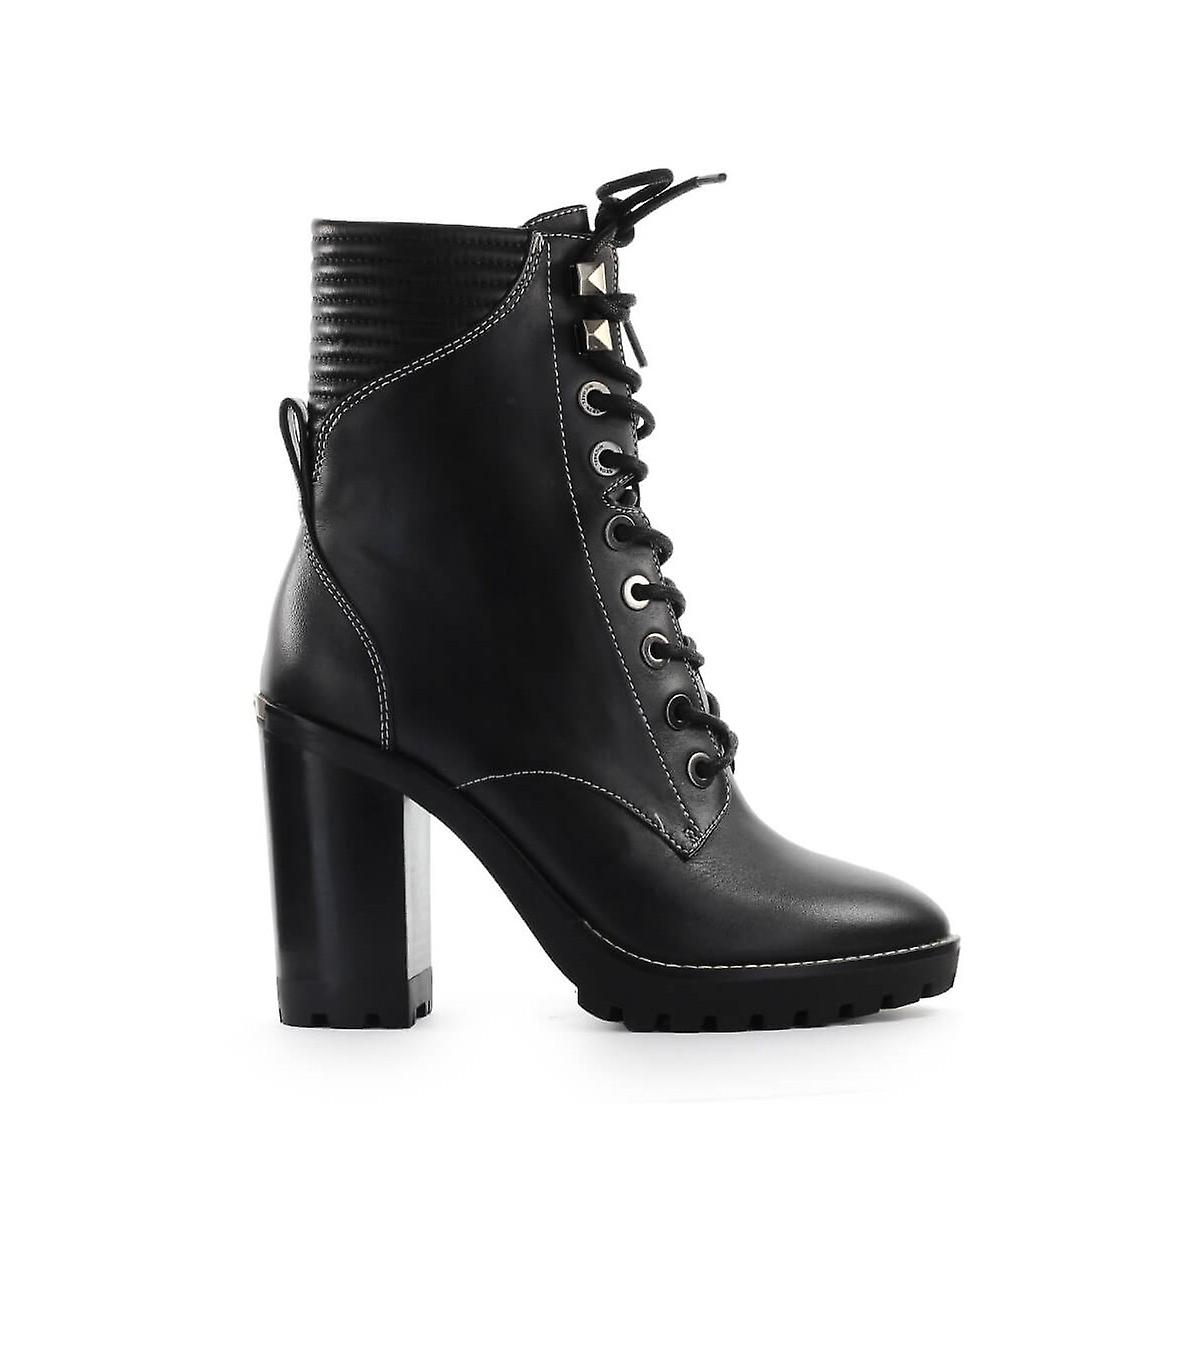 MICHAEL KORS BASTIAN BLACK HEELED COMBAT BOOT DaBhv